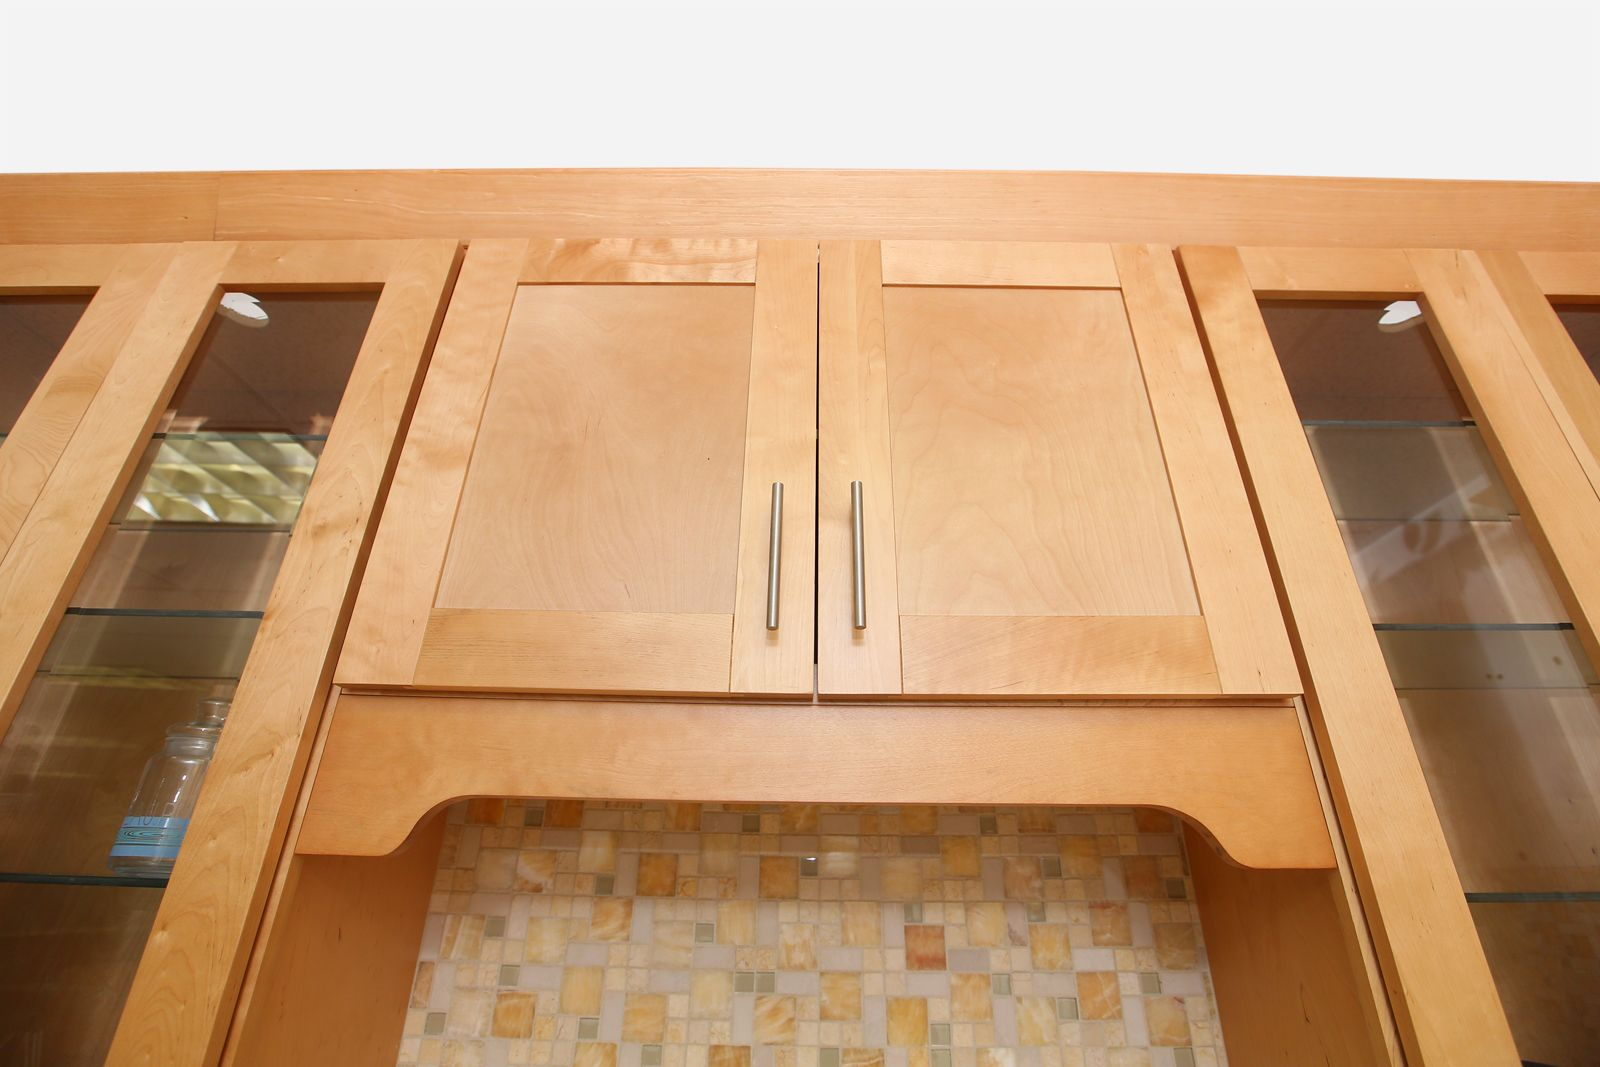 Honey Shaker Under View Of Our Gorgeous Maple Wood Easy And Ready To Assemble With Outstanding Quality Ho Rta Kitchen Cabinets Shaker Cabinets Rta Kitchen